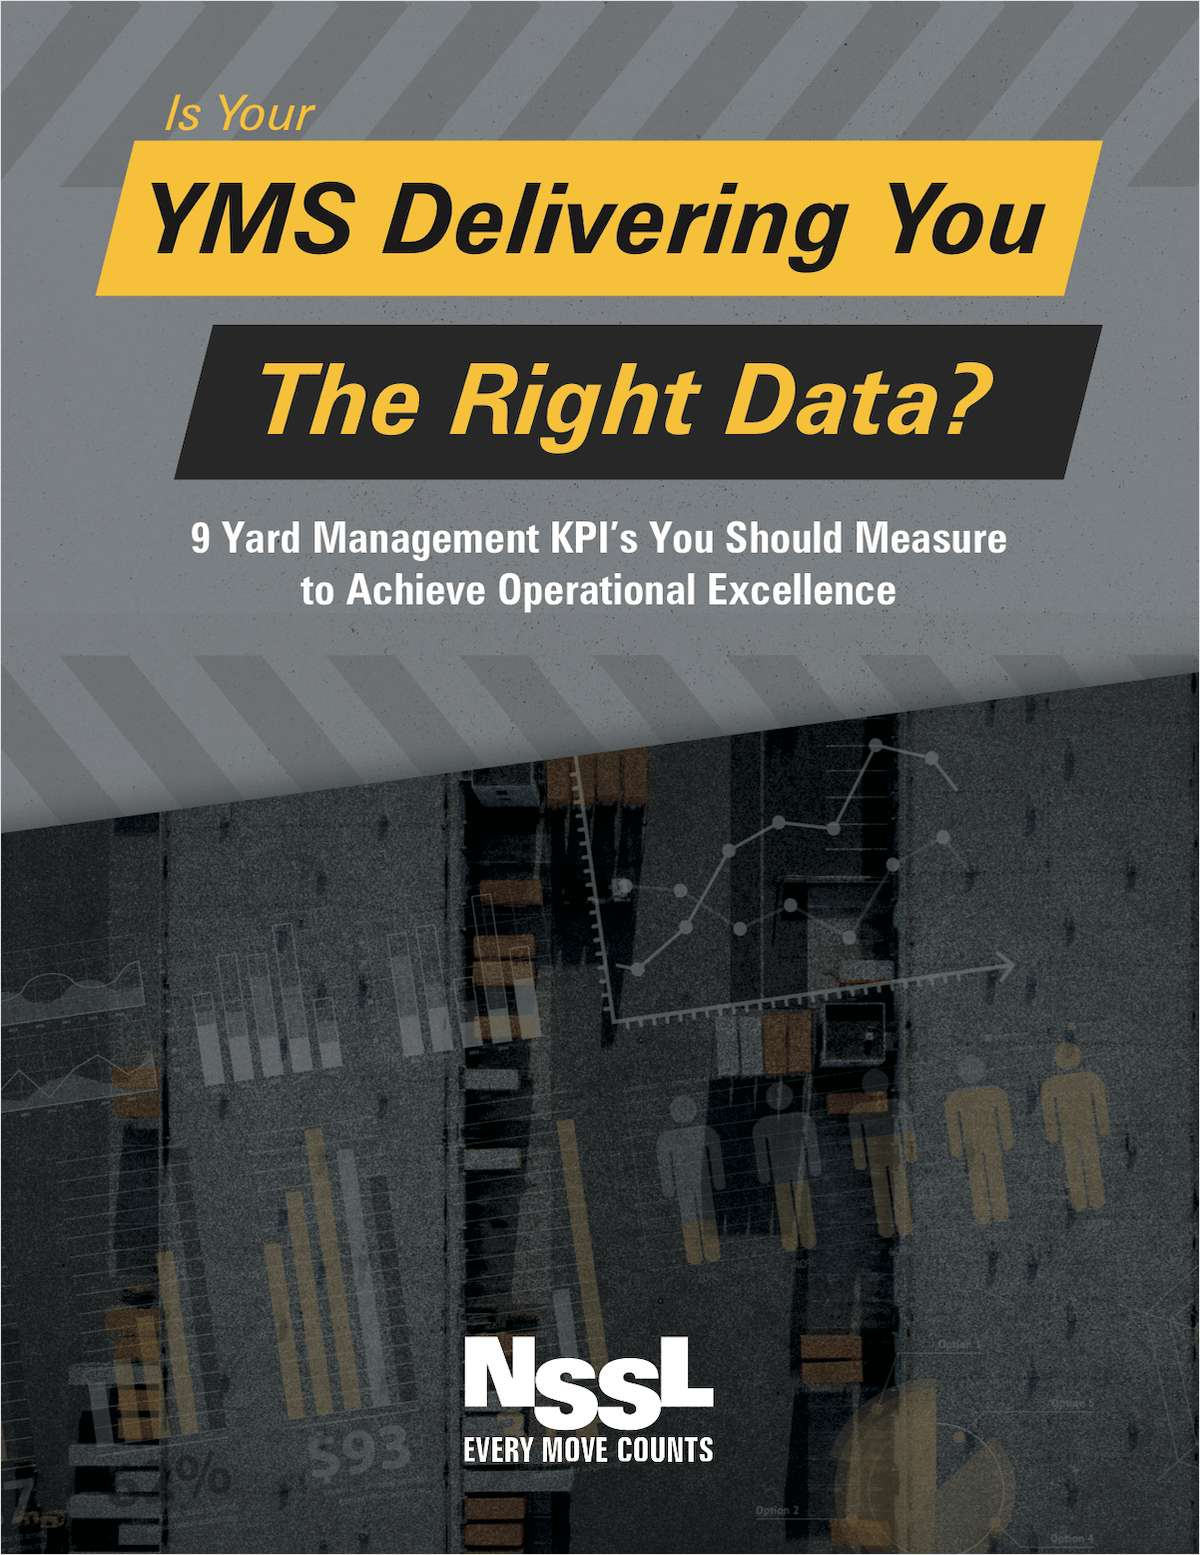 Is Your YMS Delivering You The Right Data?